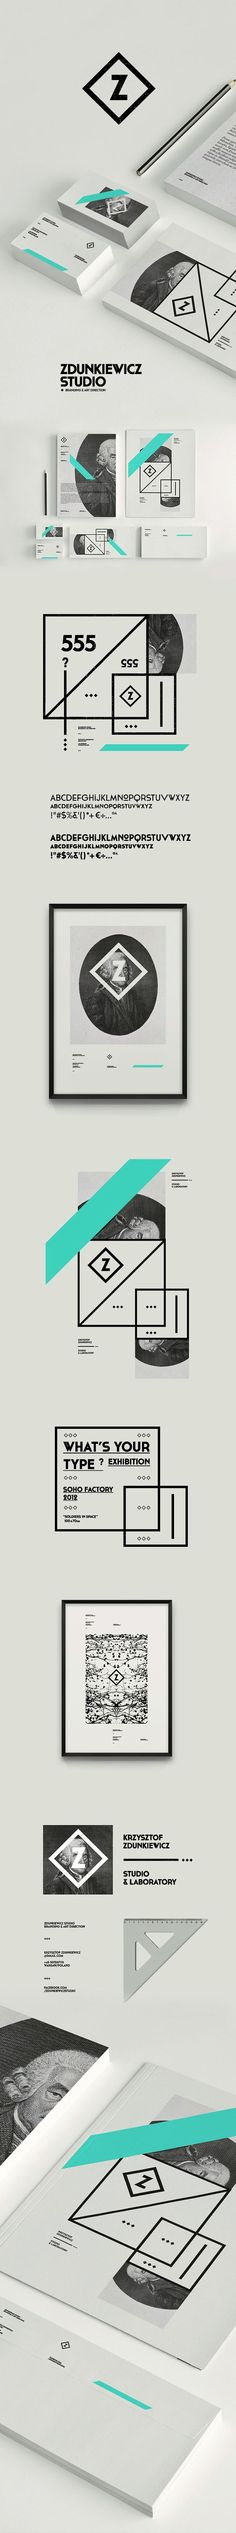 Zdunkiewicz Studio Branding on Behance | Fivestar Branding – Design and Branding Agency & Inspiration Gallery